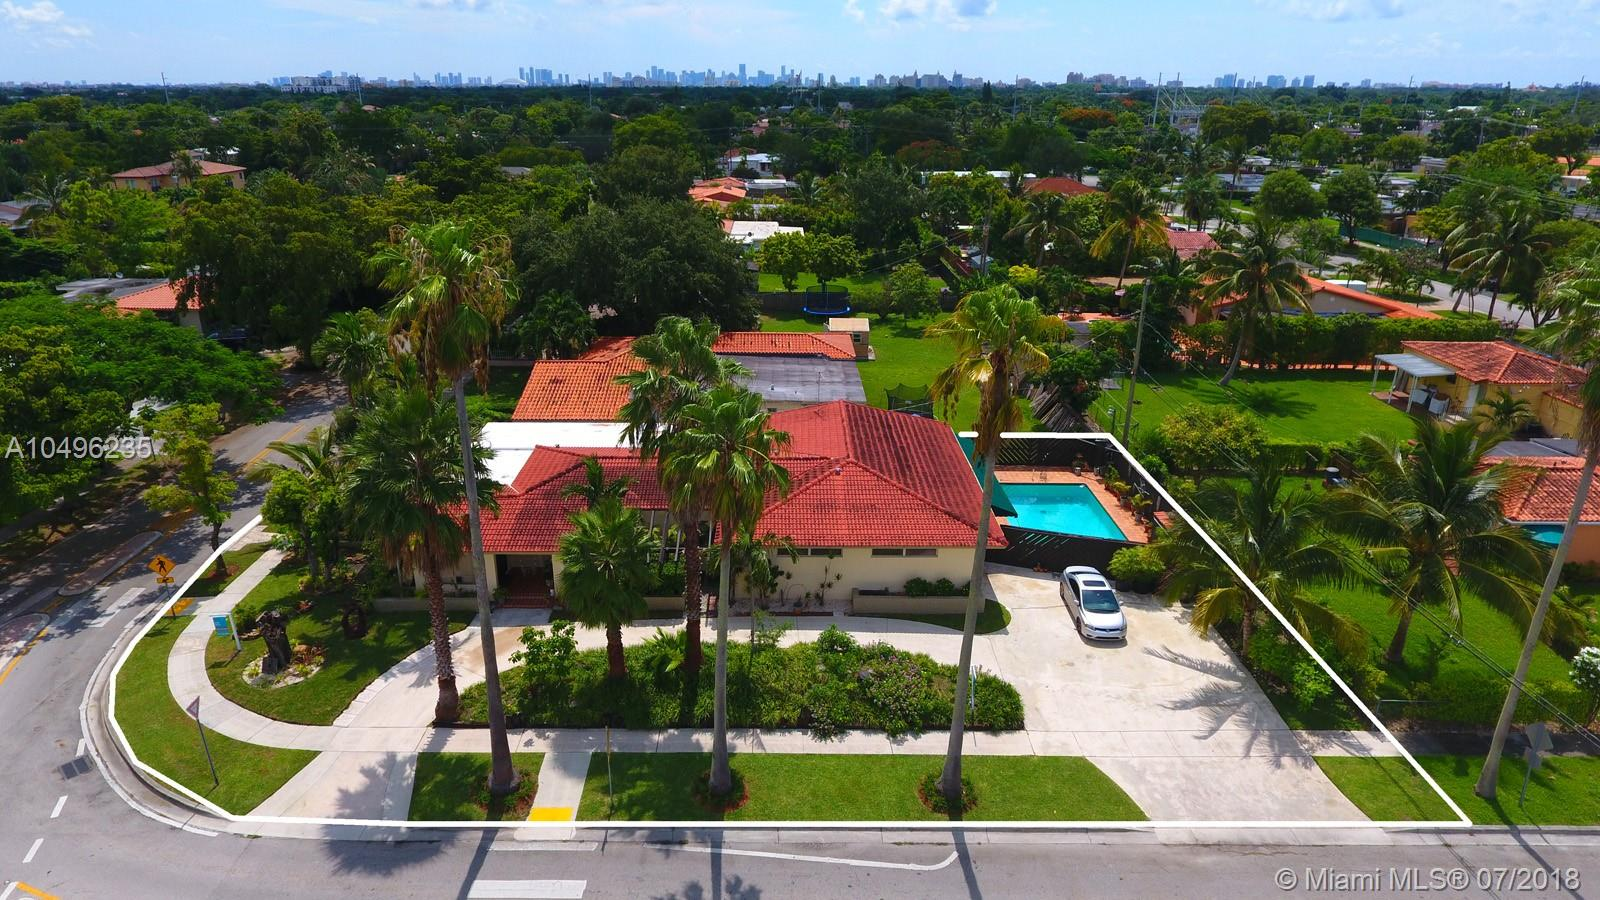 6386 Sw 15th St, West Miami FL, 33144